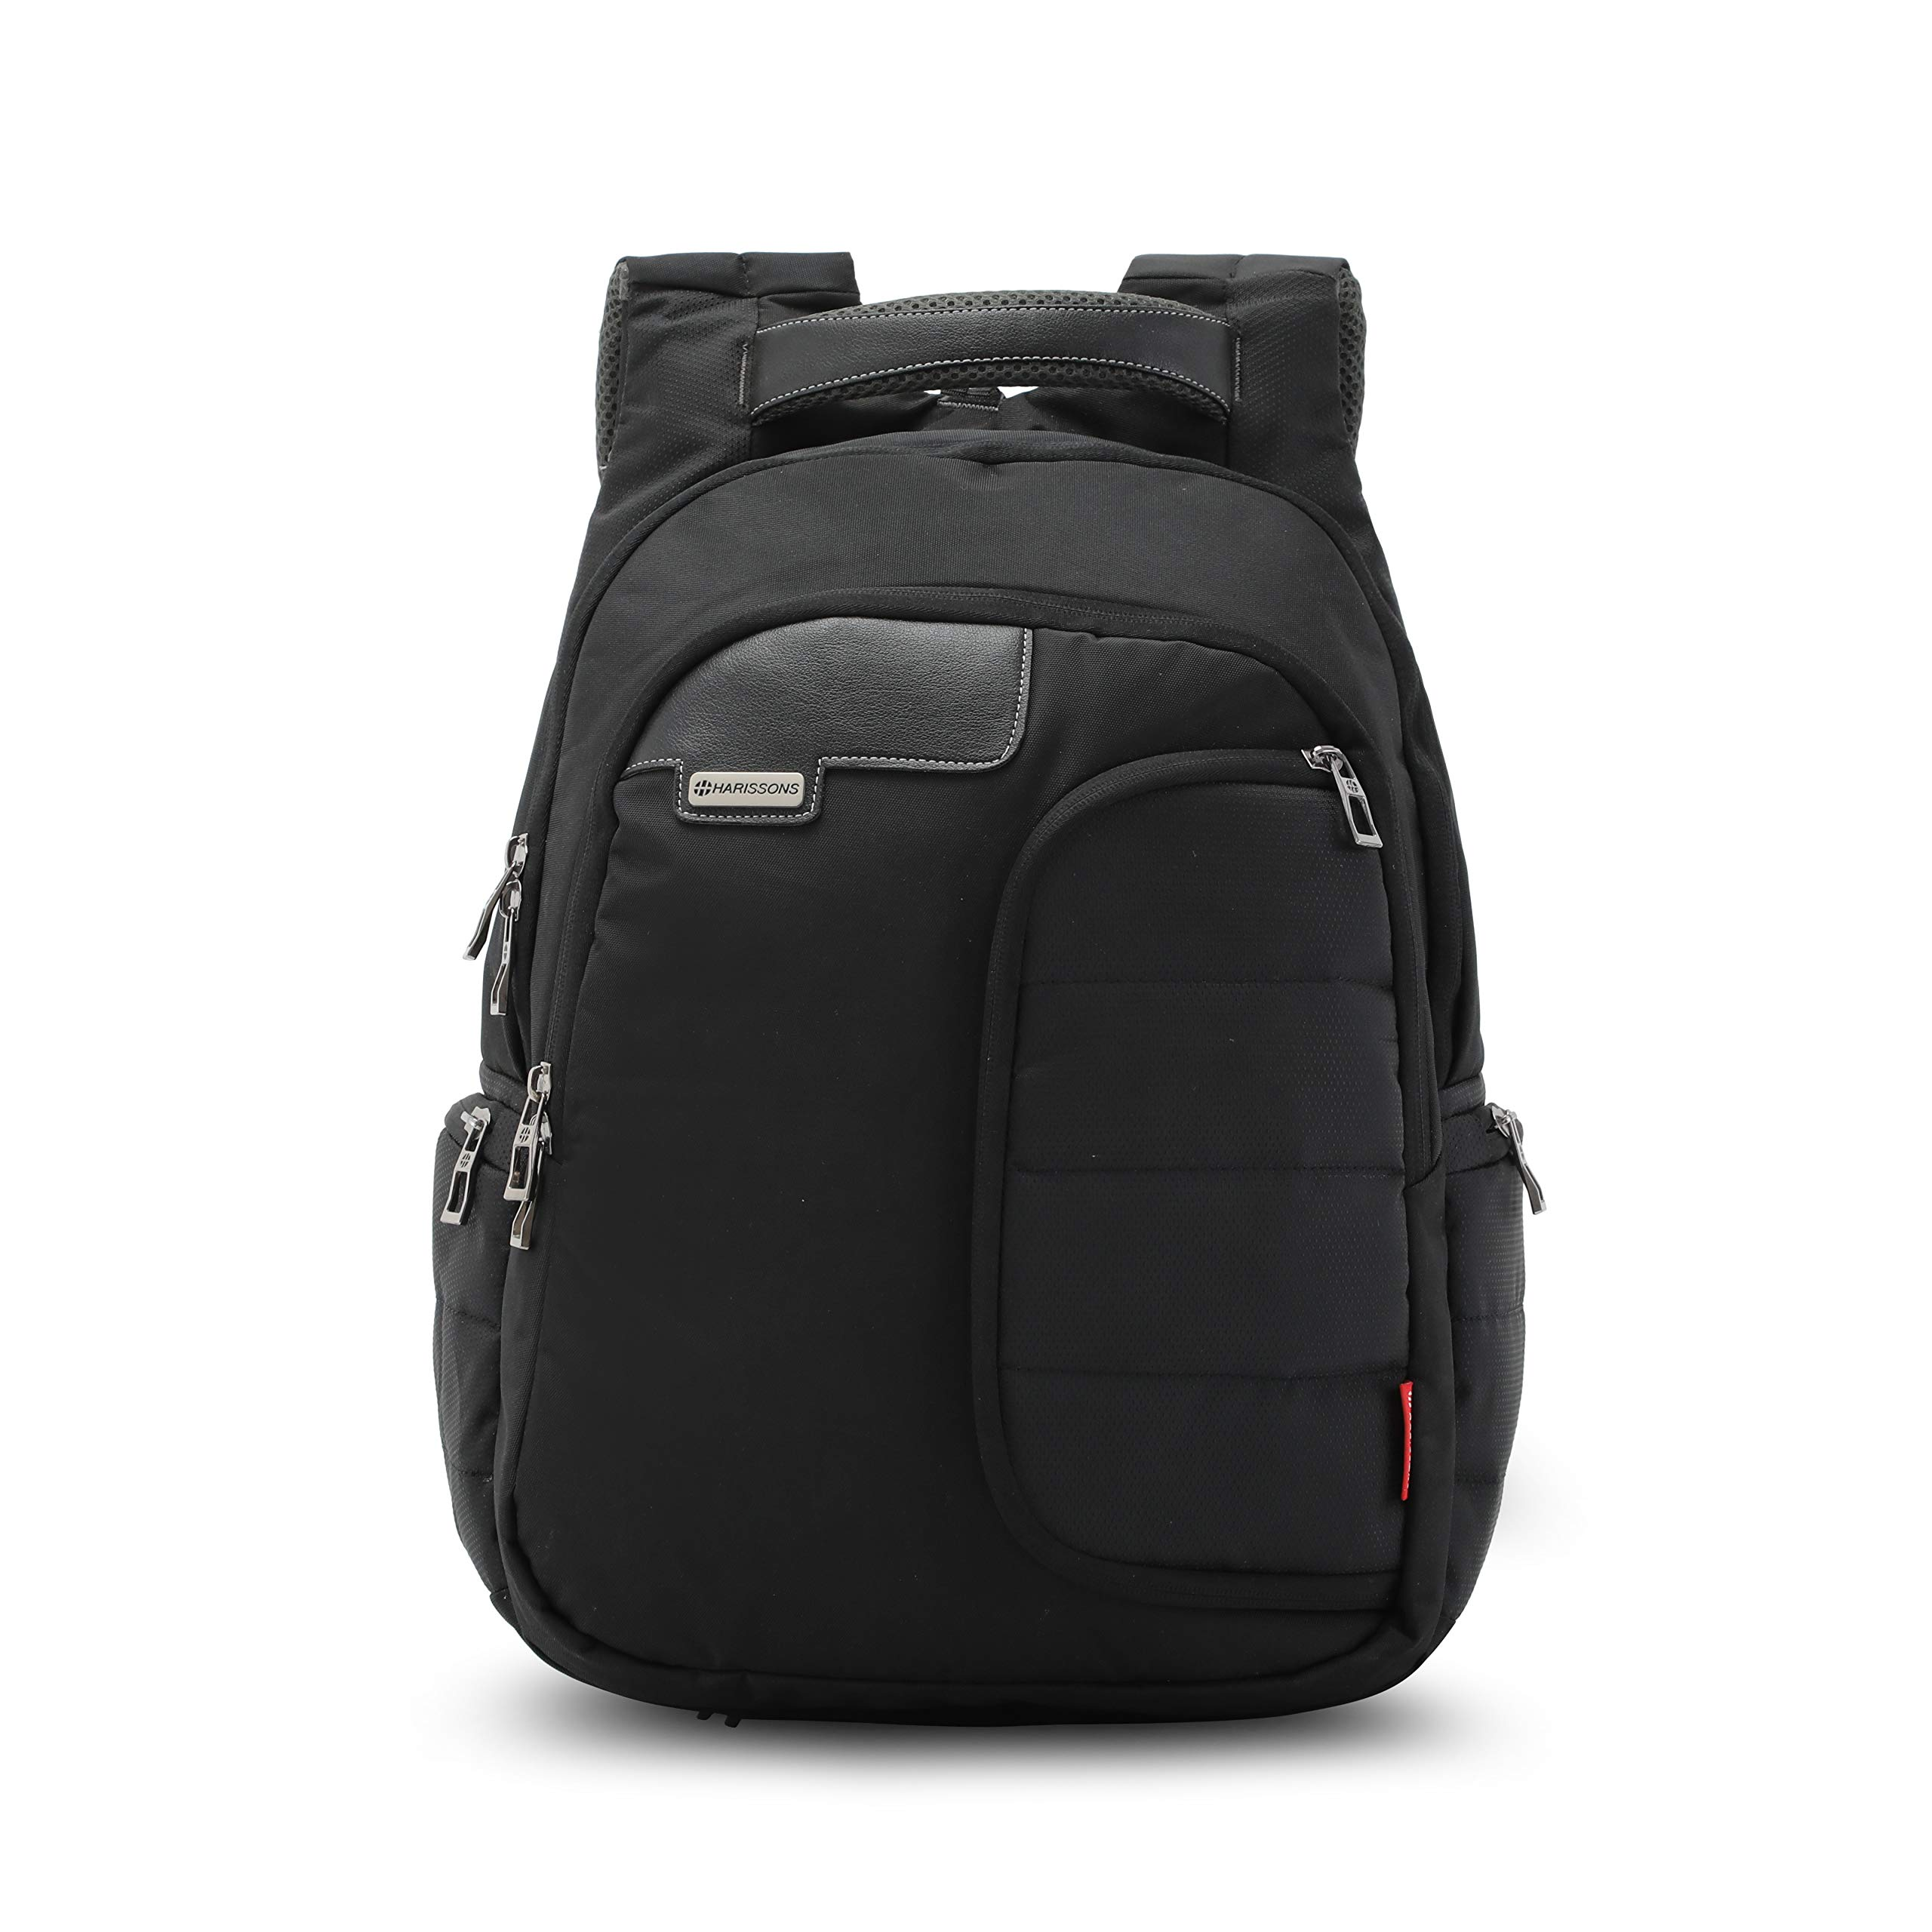 Harissons Vervo Laptop Backpack for Men and Women - Bag with Built-in Waterproof Rain Cover - Fits Laptop Up to 14 Inch (Black) (40 Ltrs) product image